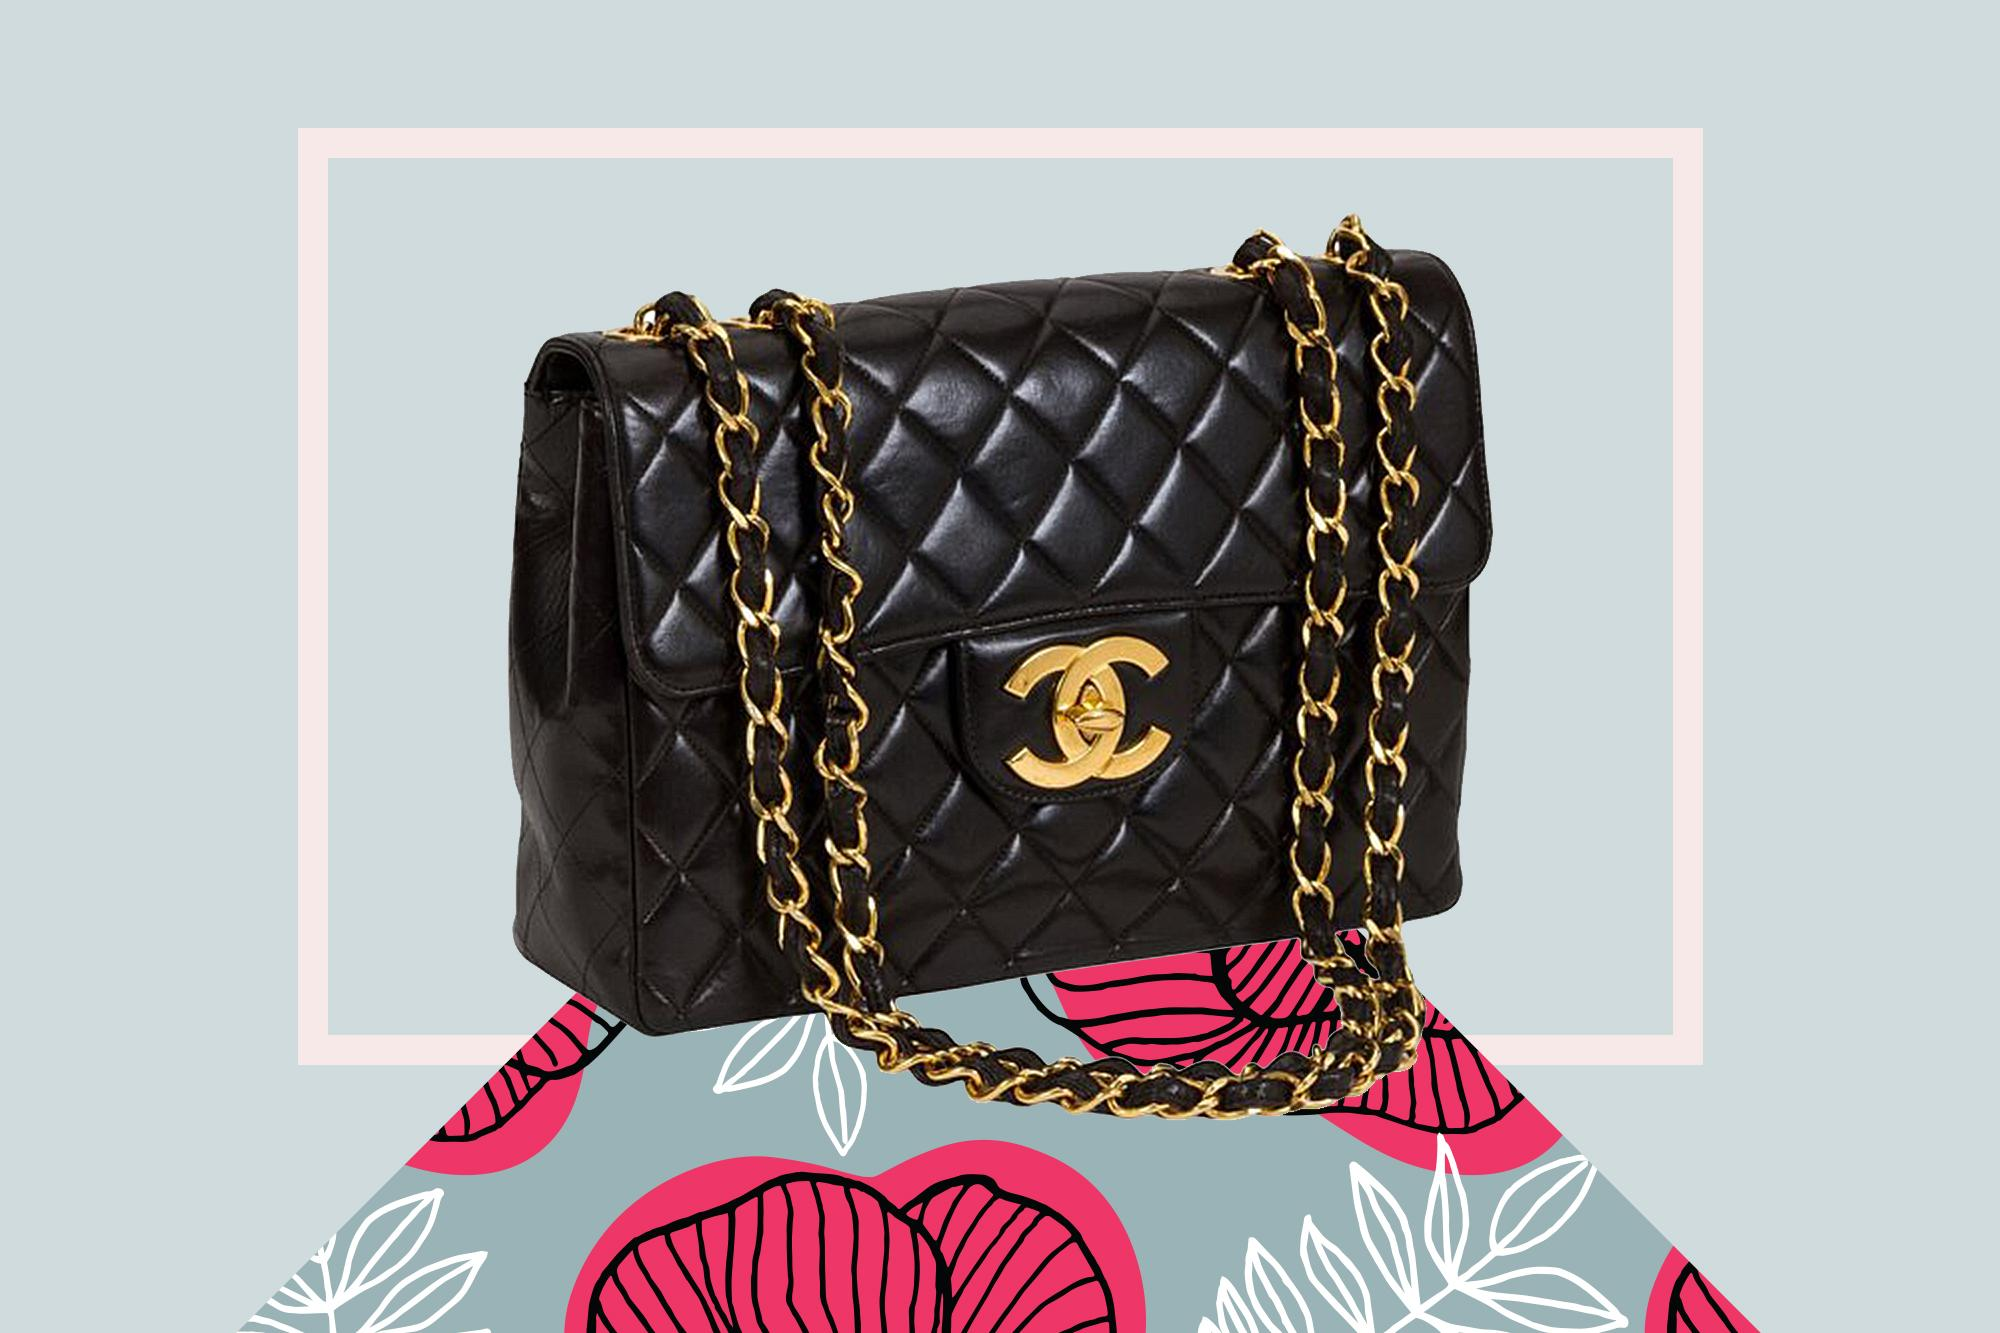 Bags On Sale / reviews of CHANEL handbags and collections ...